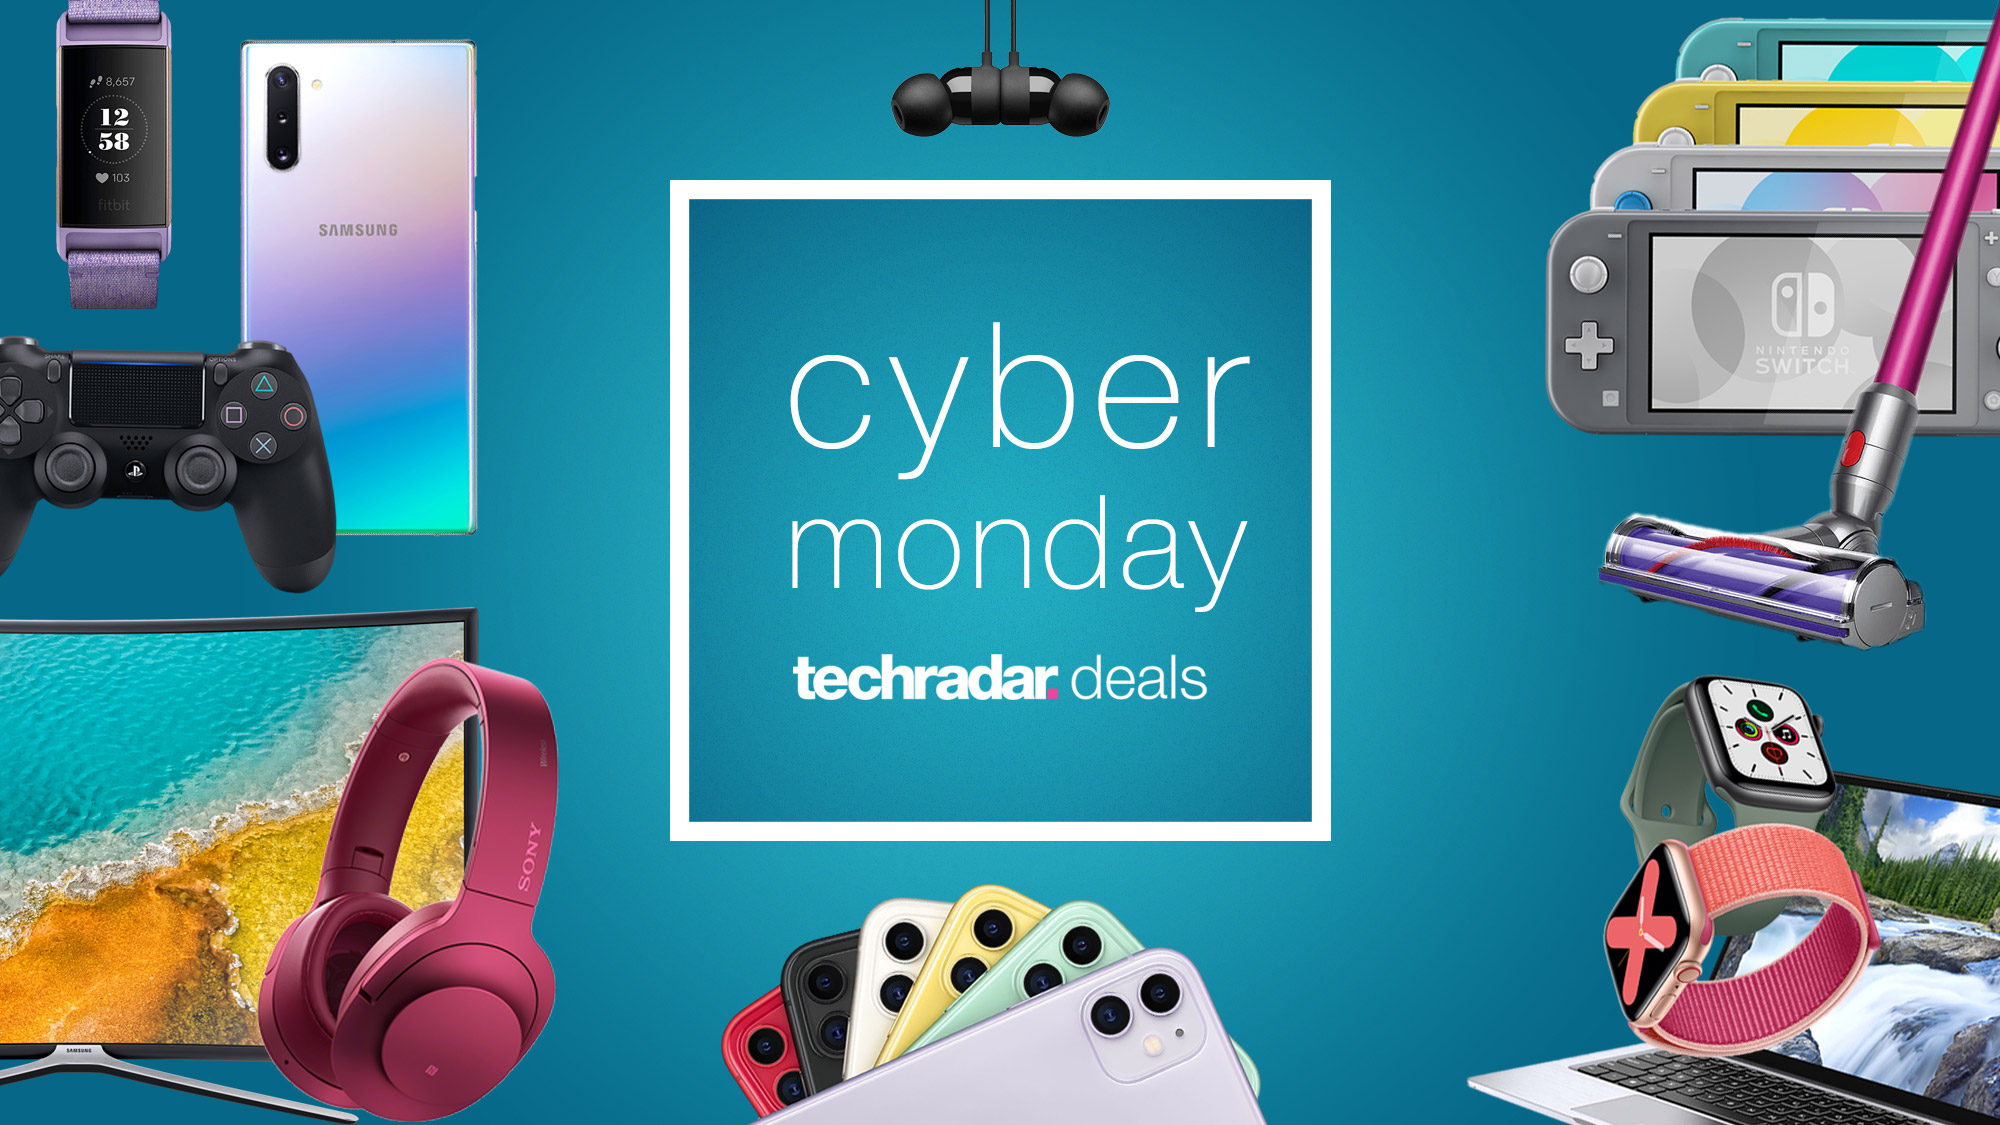 Don't miss Cyber Monday deals to save a lot of money